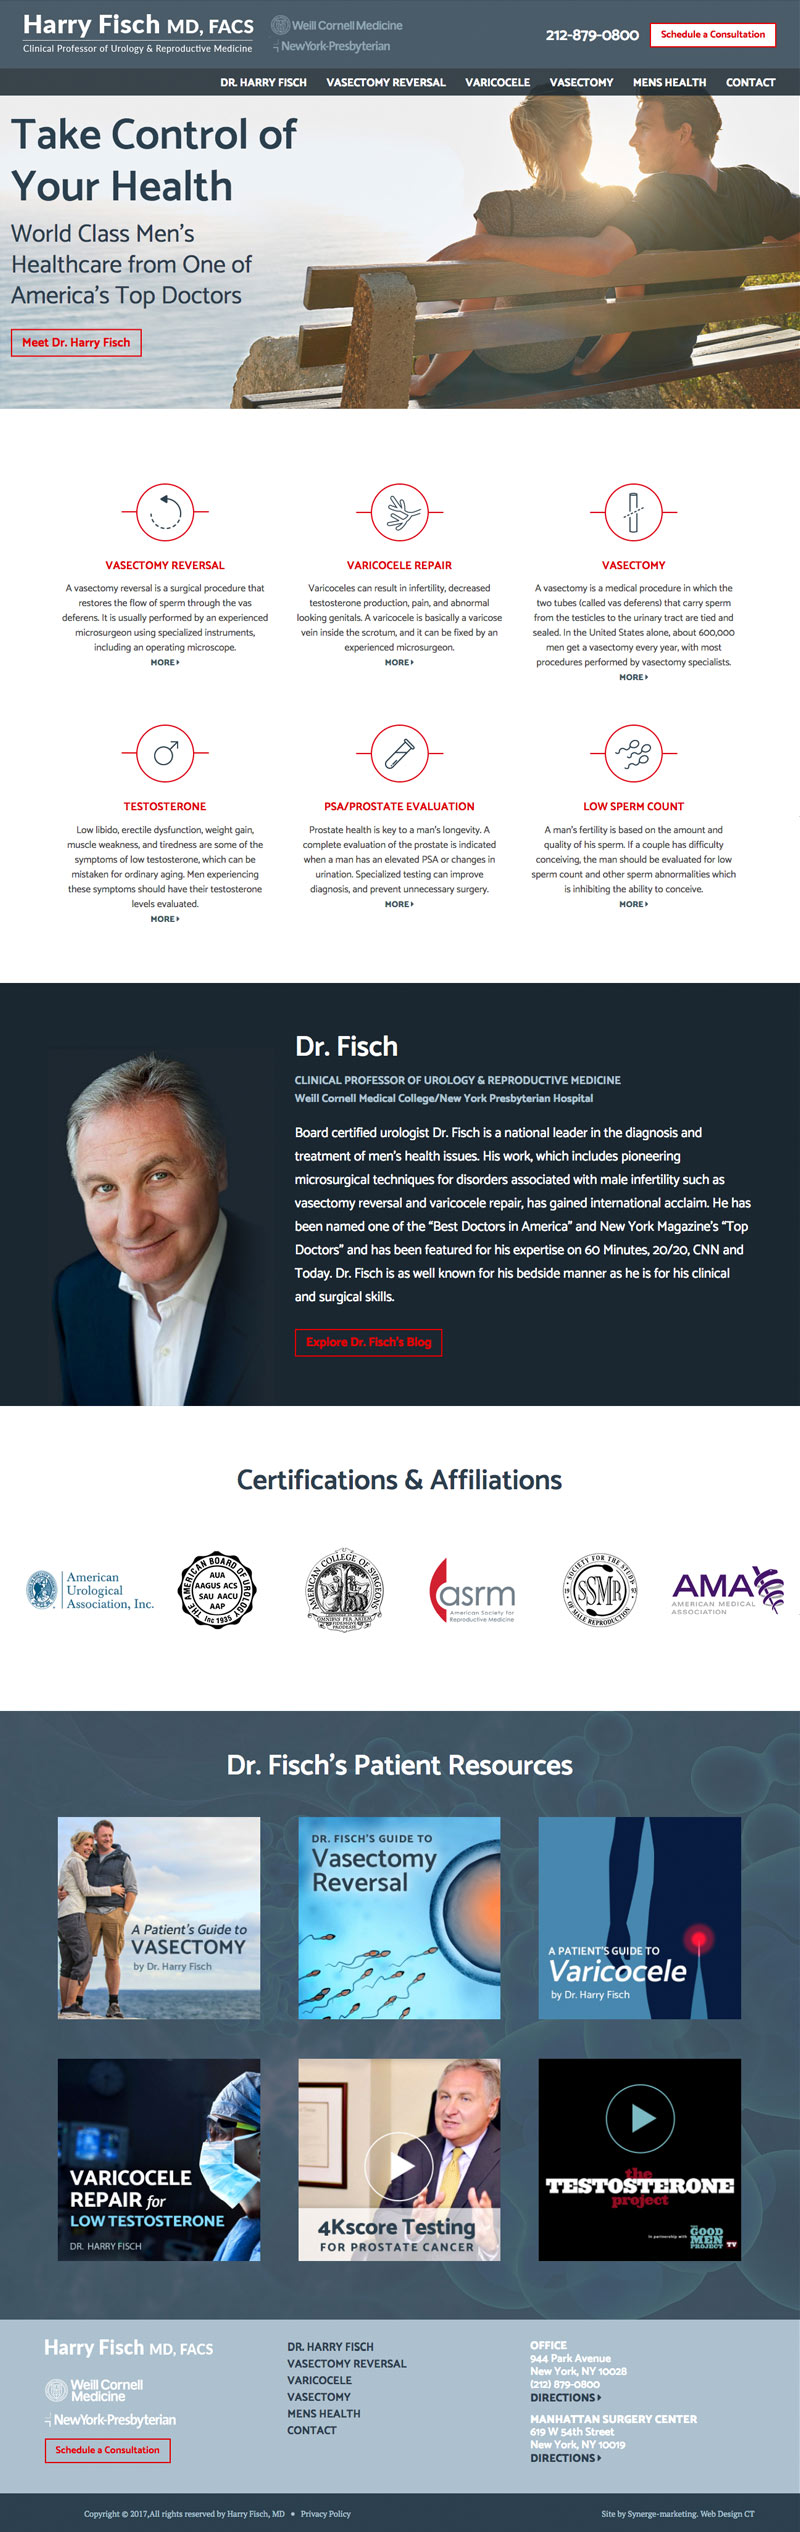 Healthcare Web Design - Dr. Harry Fisch - Home Page Design